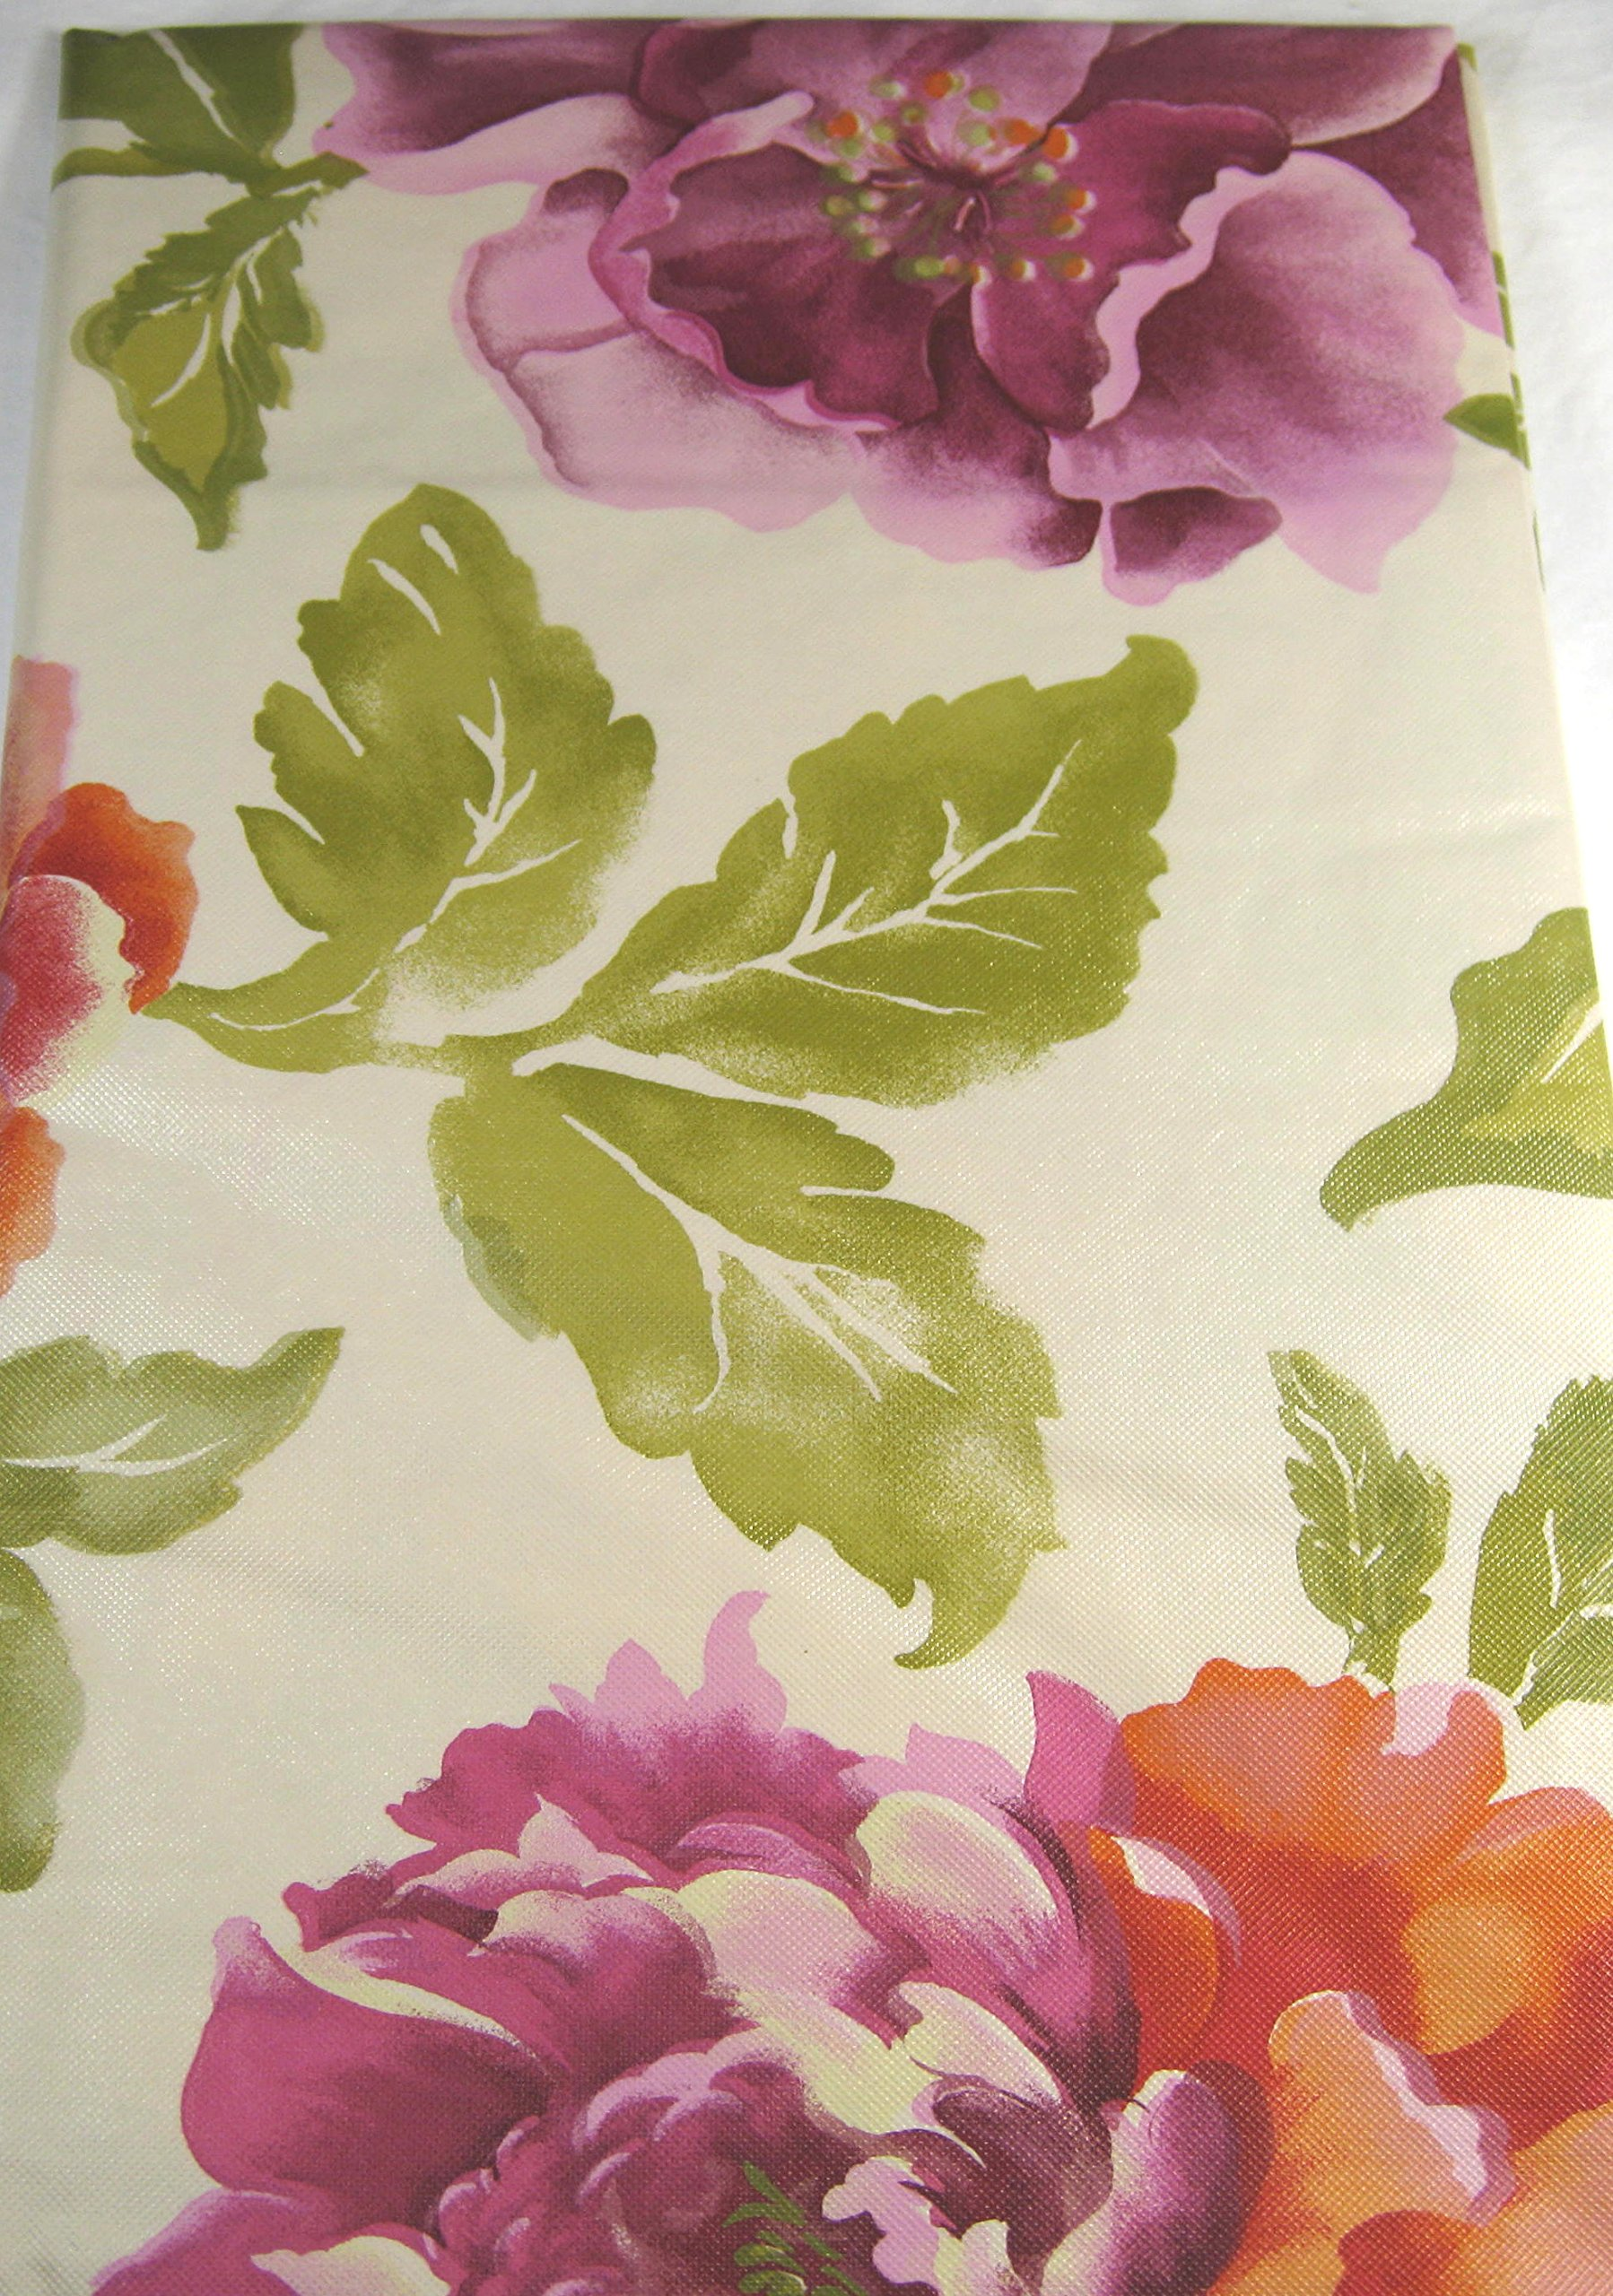 Elrene Large Assorted Flowers Flannel Back Vinyl Tablecloths Assorted Sizes Oblong and Round By (52 x 70 Oblong) by Elrene